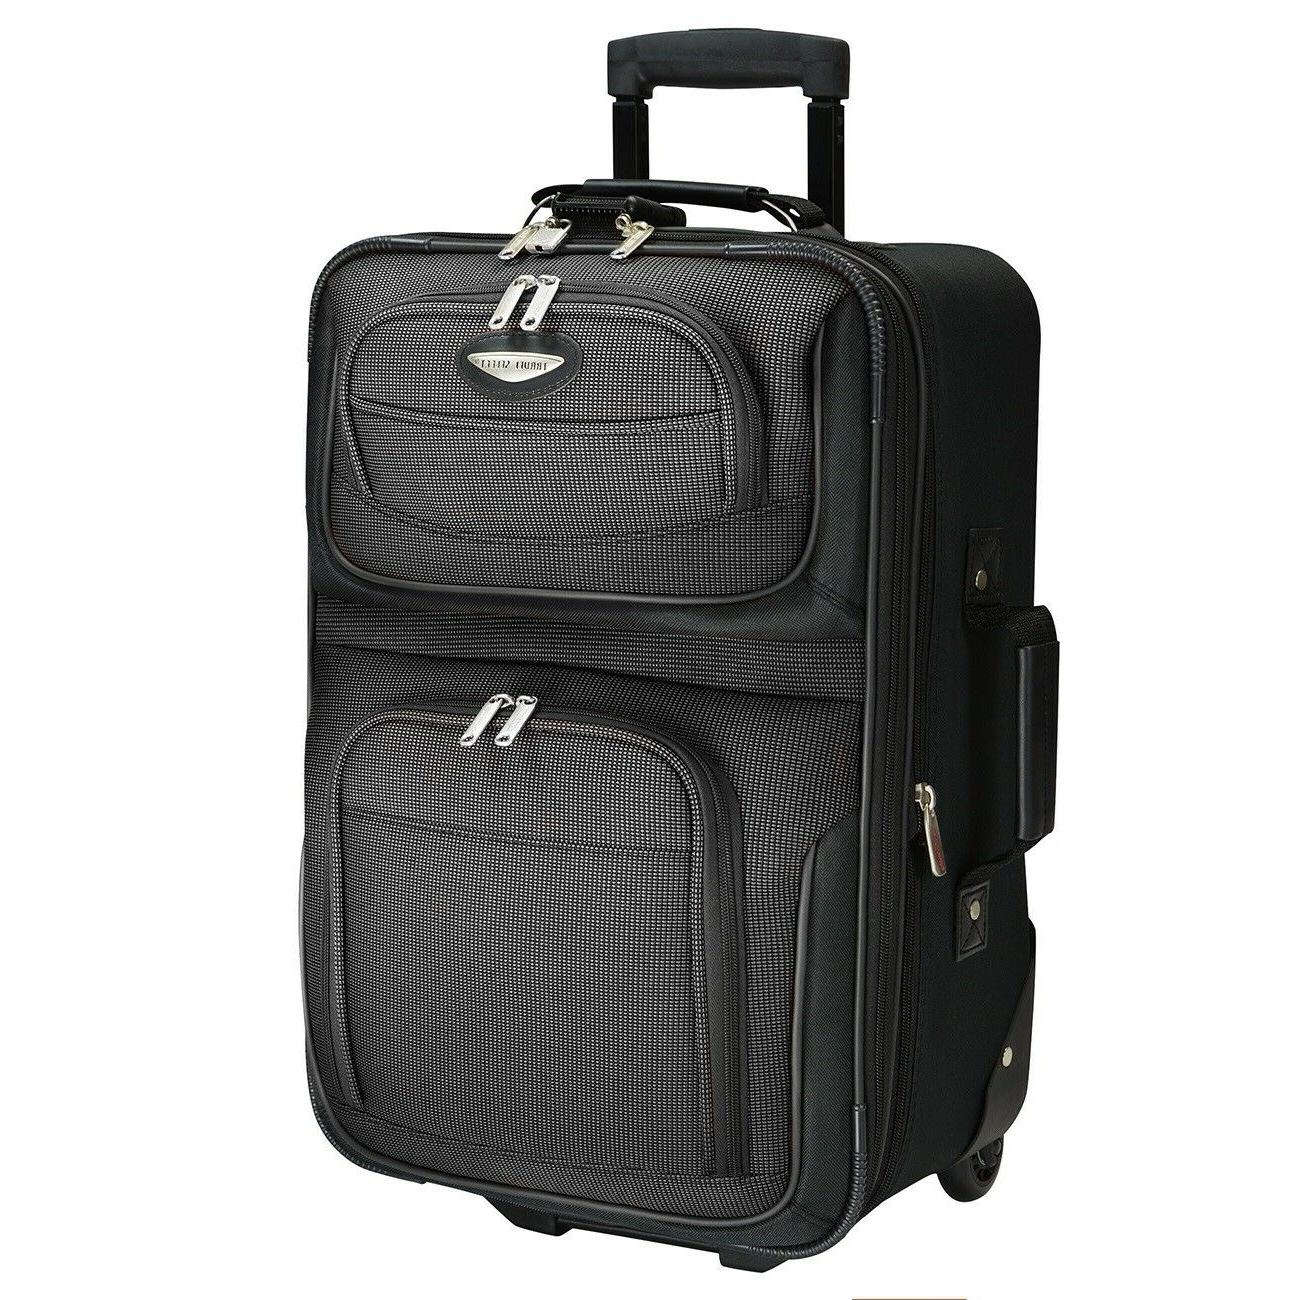 Traveler's Carry-on Expandable Luggage Suitcase Bag